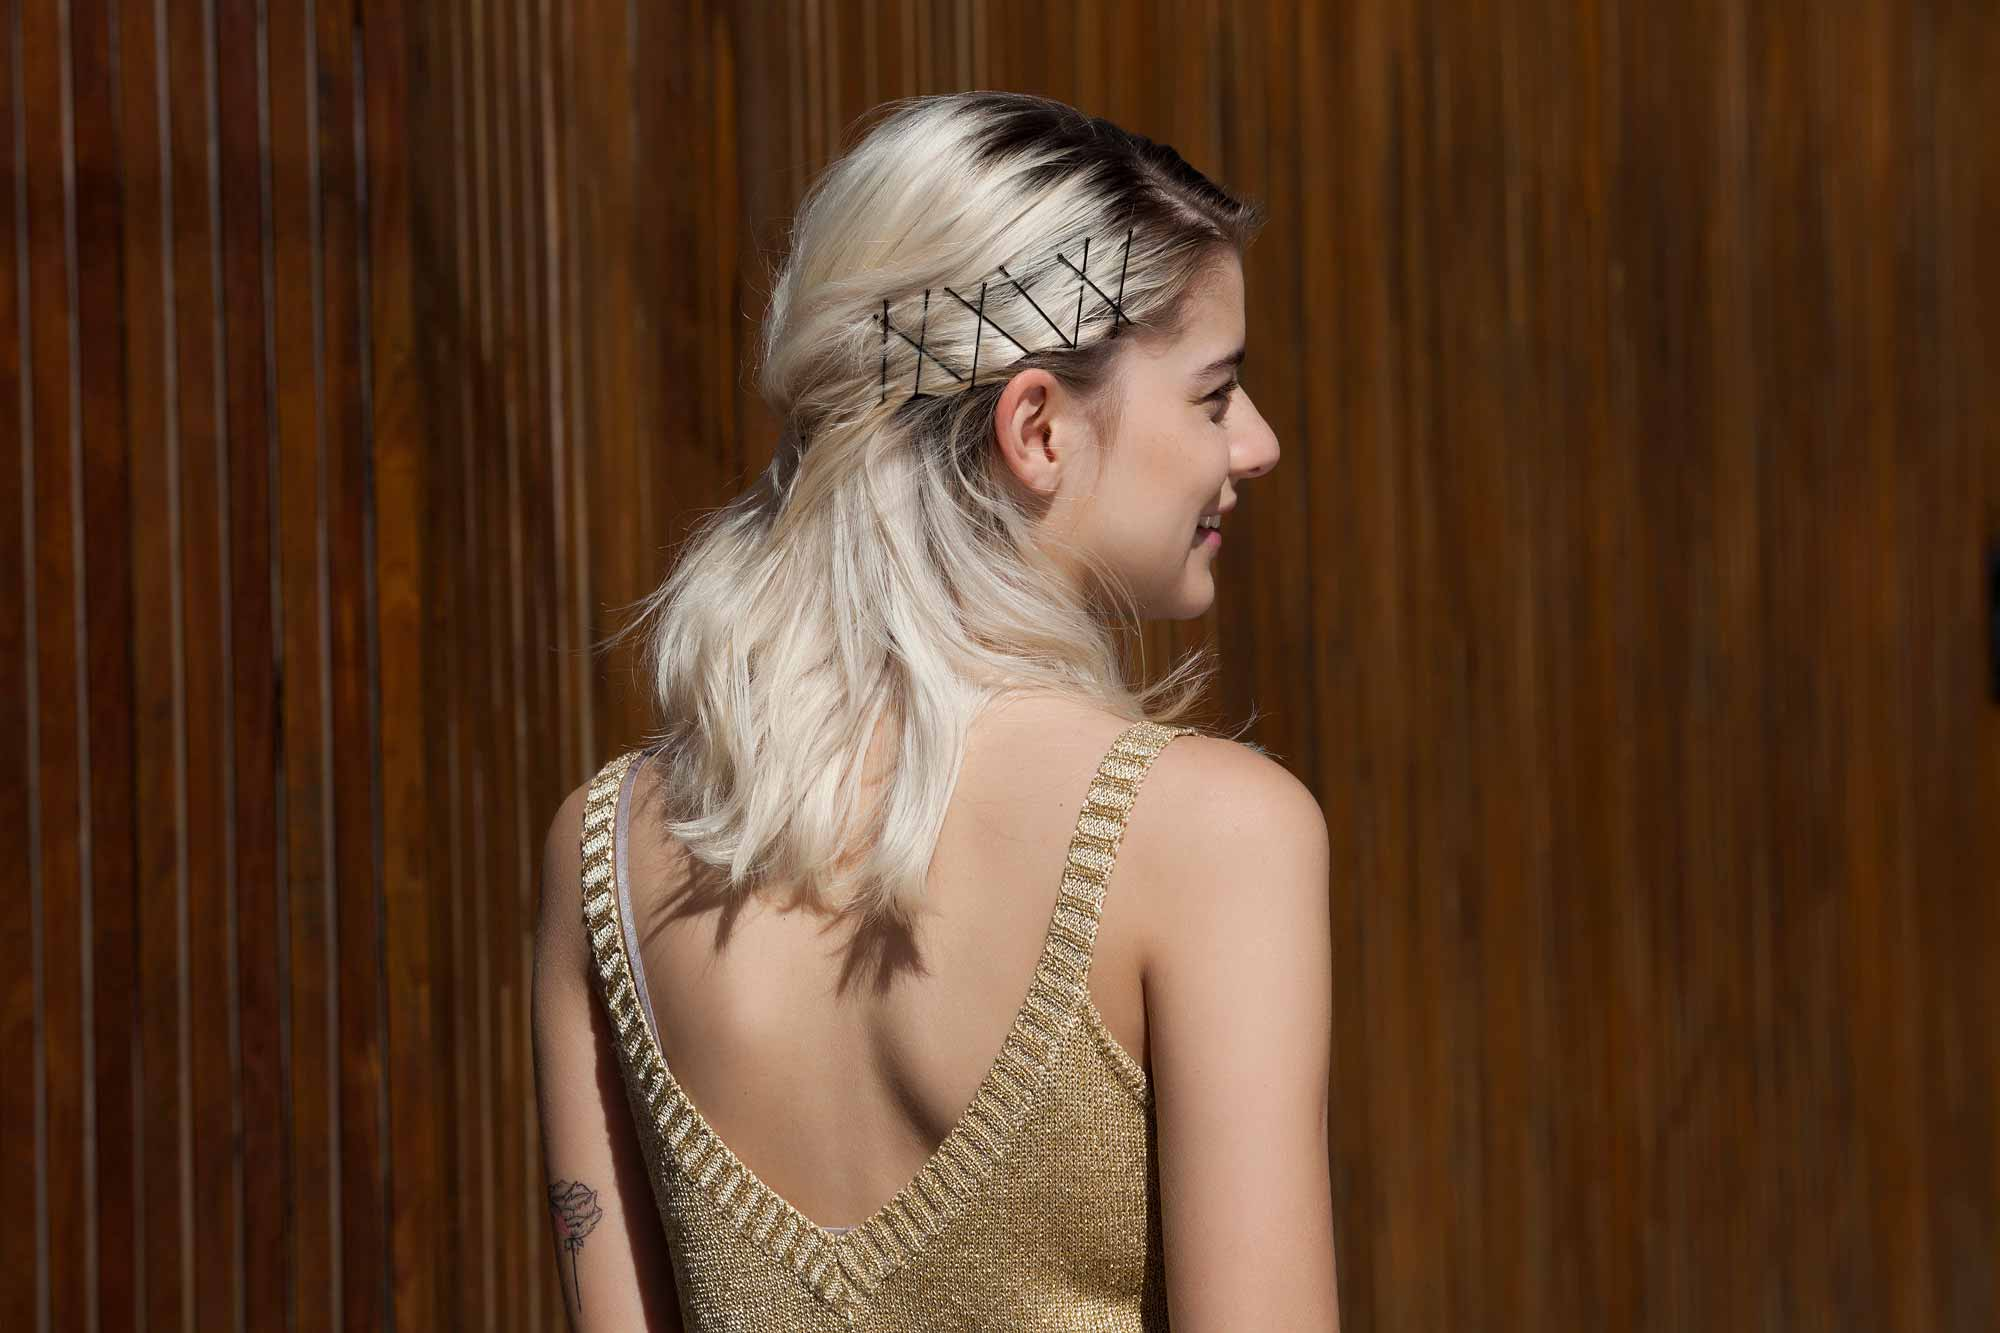 Bobby pin hairstyles: Close up shot of a woman with bleach blonde half up half down hairstyle with bobby pins